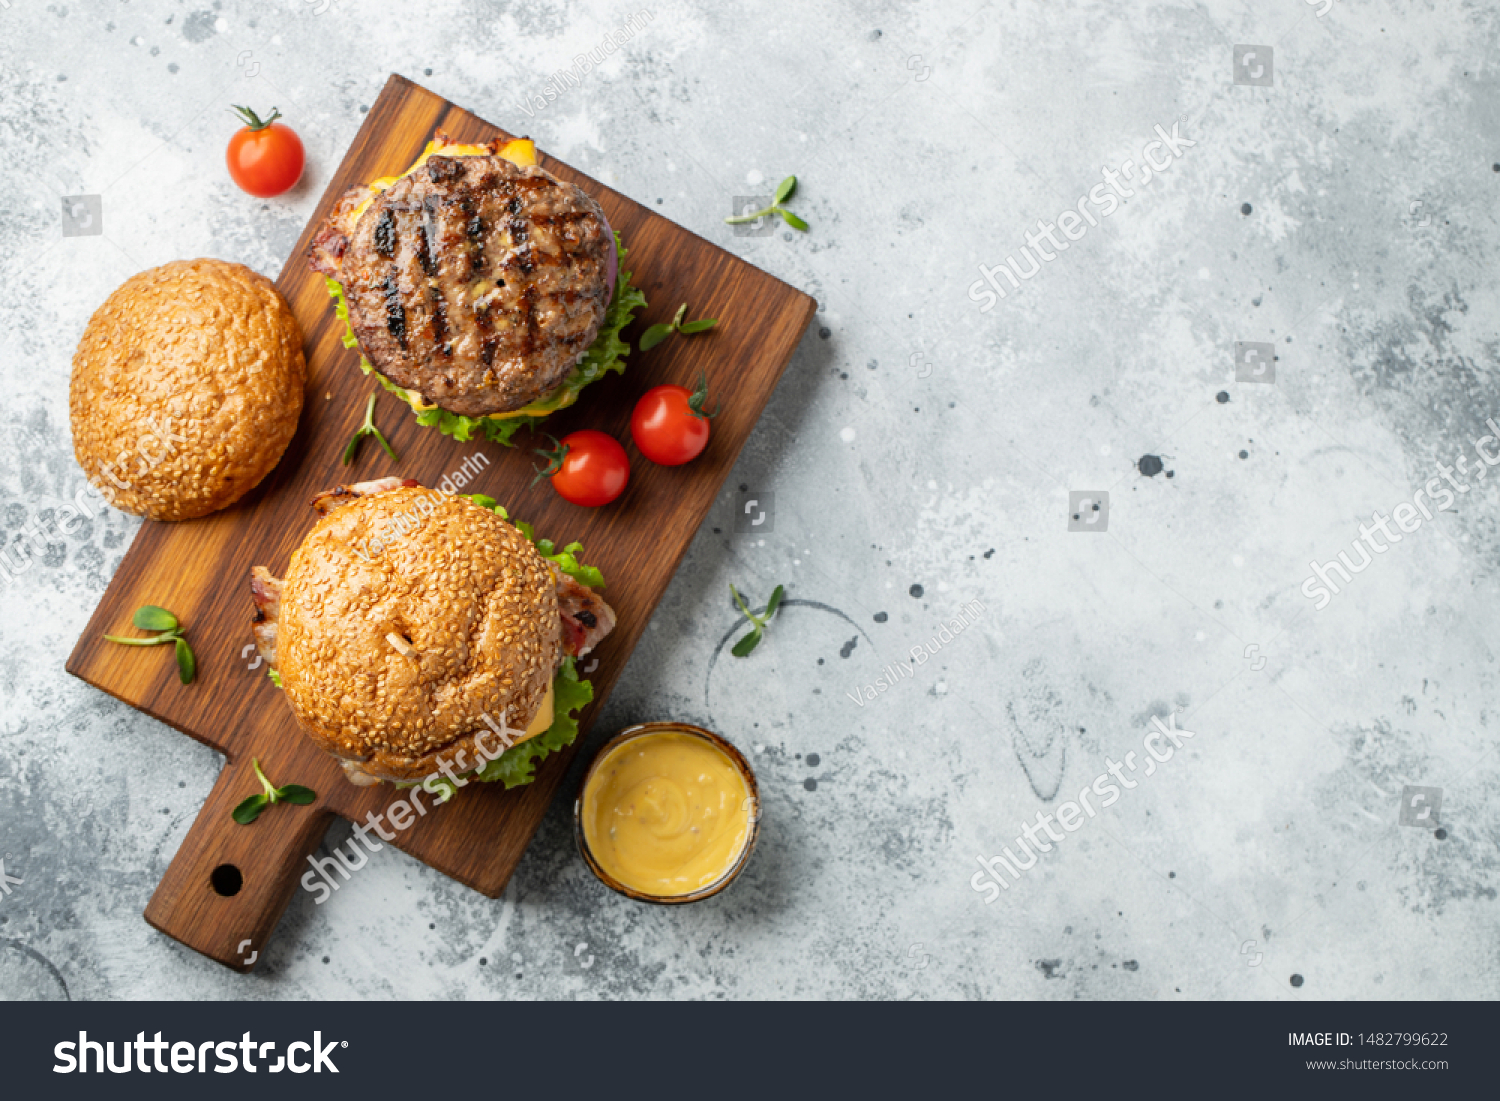 Tasty grilled home made burger with beef, tomato, cheese, bacon and lettuce on a light stone background with copy space. Top view. fast food and junk food concept. Flat lay #1482799622